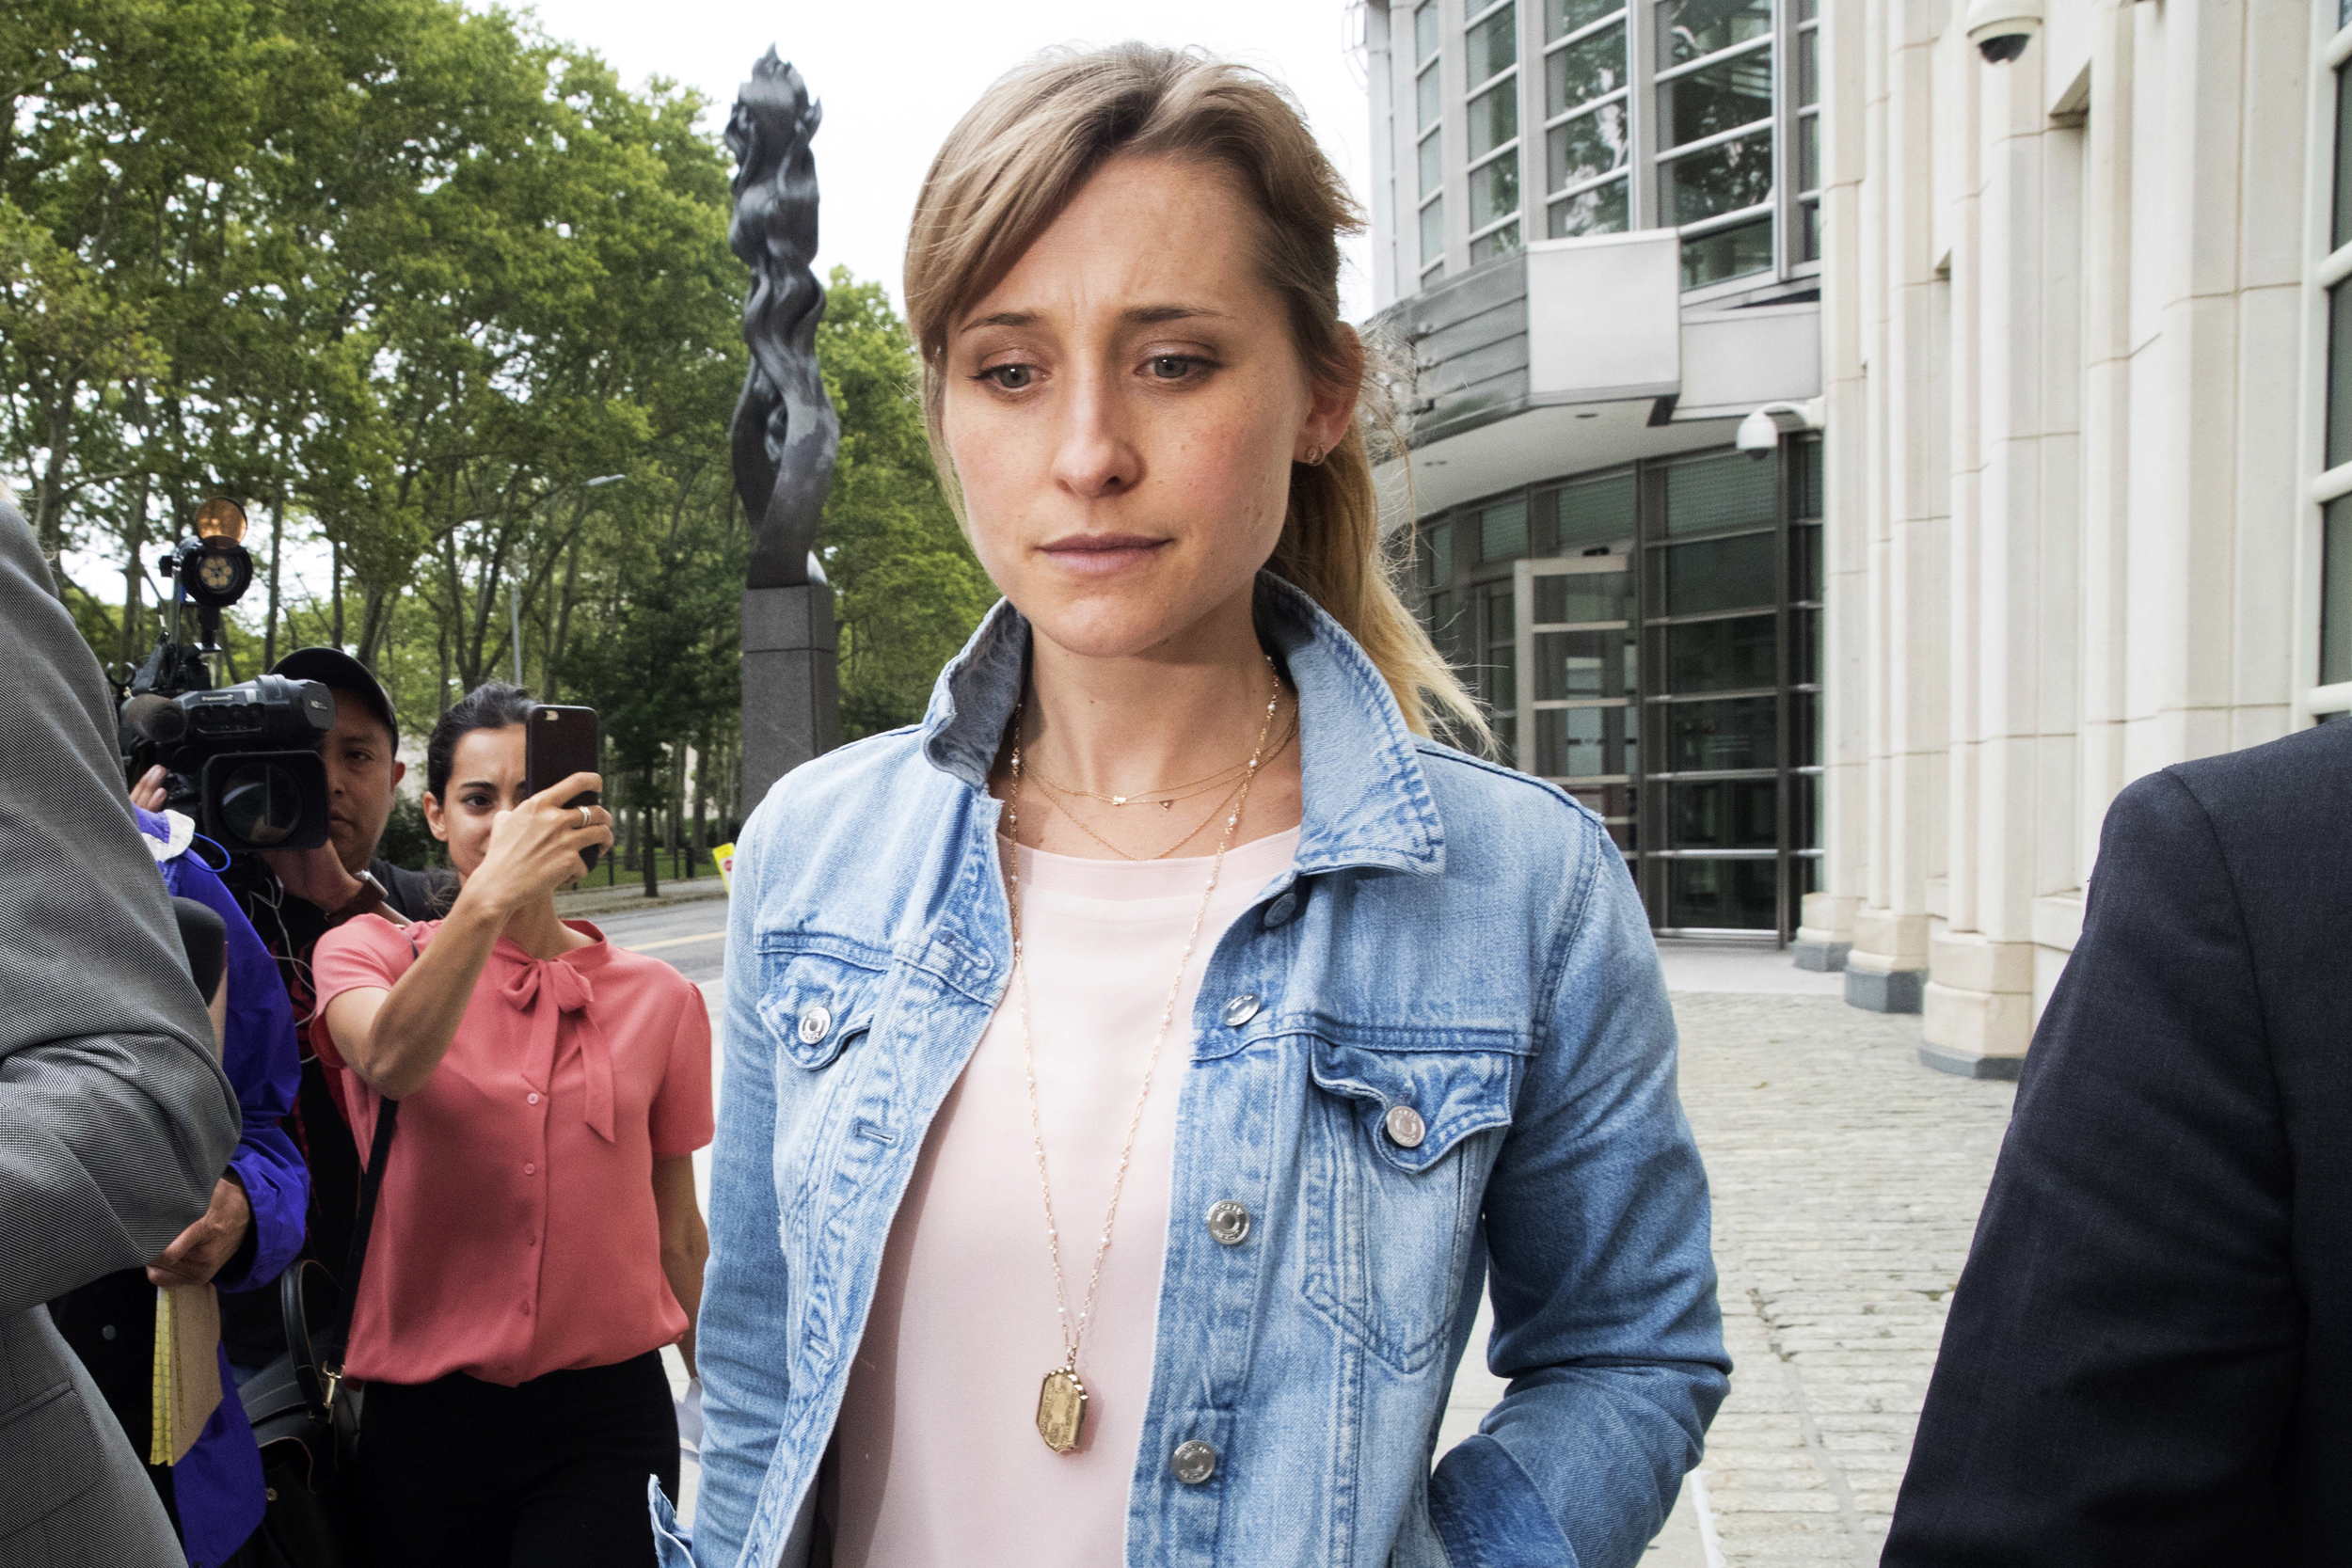 Overwhelming shame': Allison Mack apologizes as sentencing looms in NXIVM  sex cult case